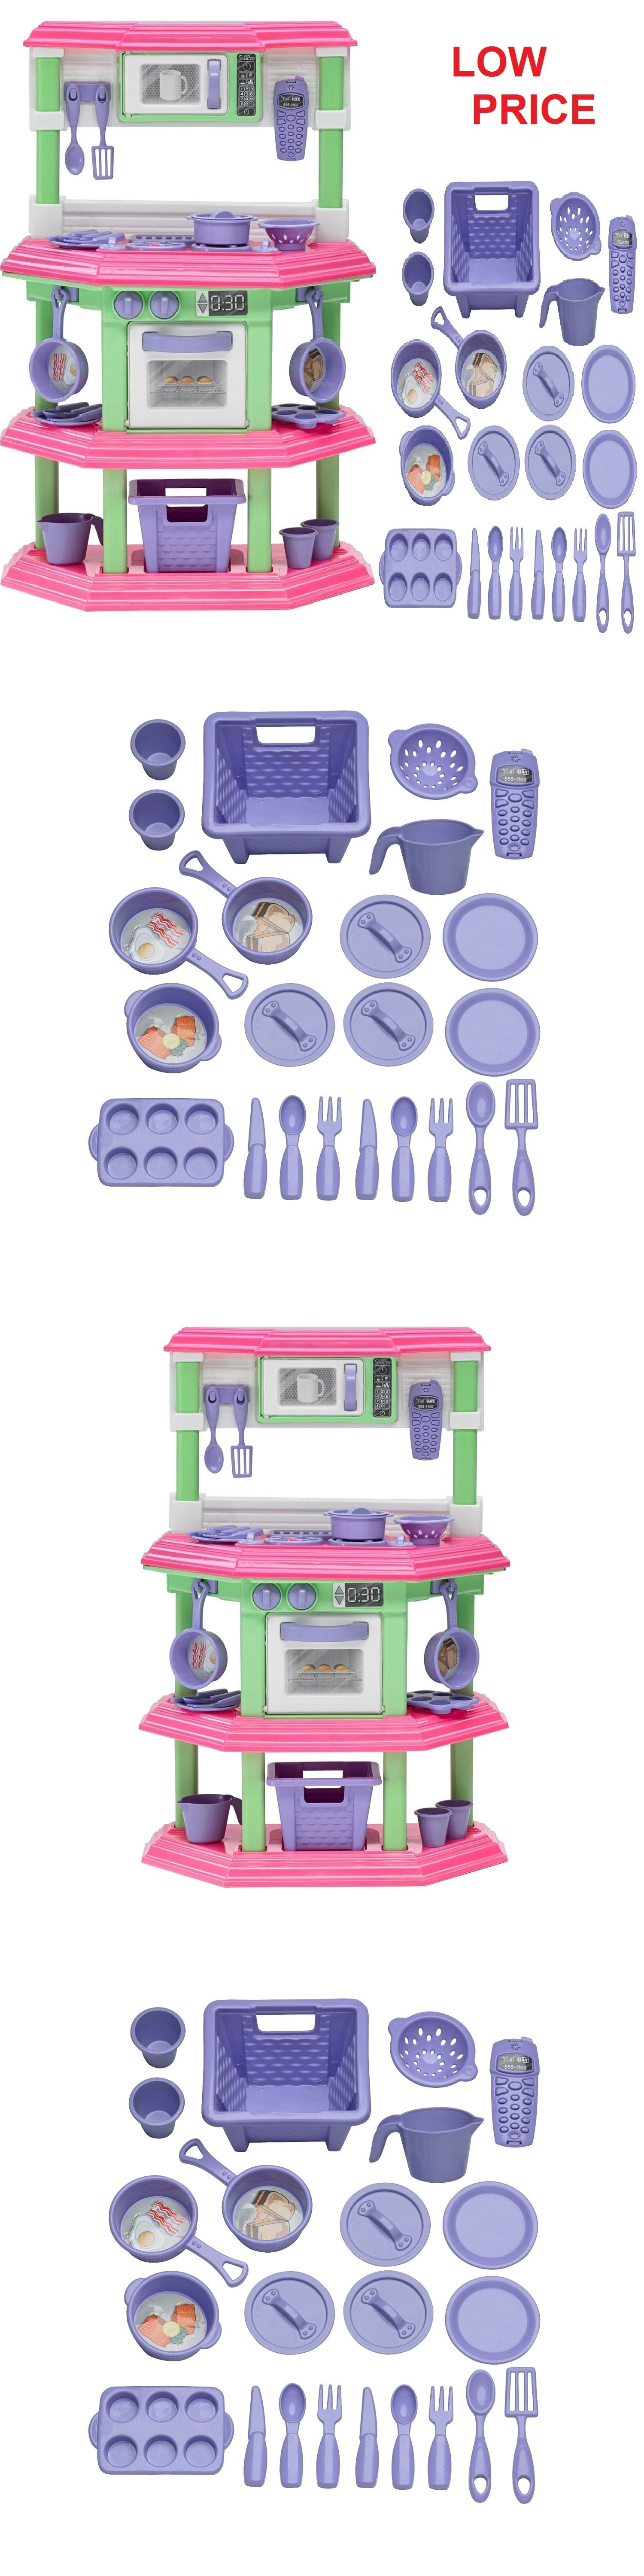 Toys for kids kitchen set  Kitchens  Pretend Kitchen Play Set For Kids Cooking Food Toy